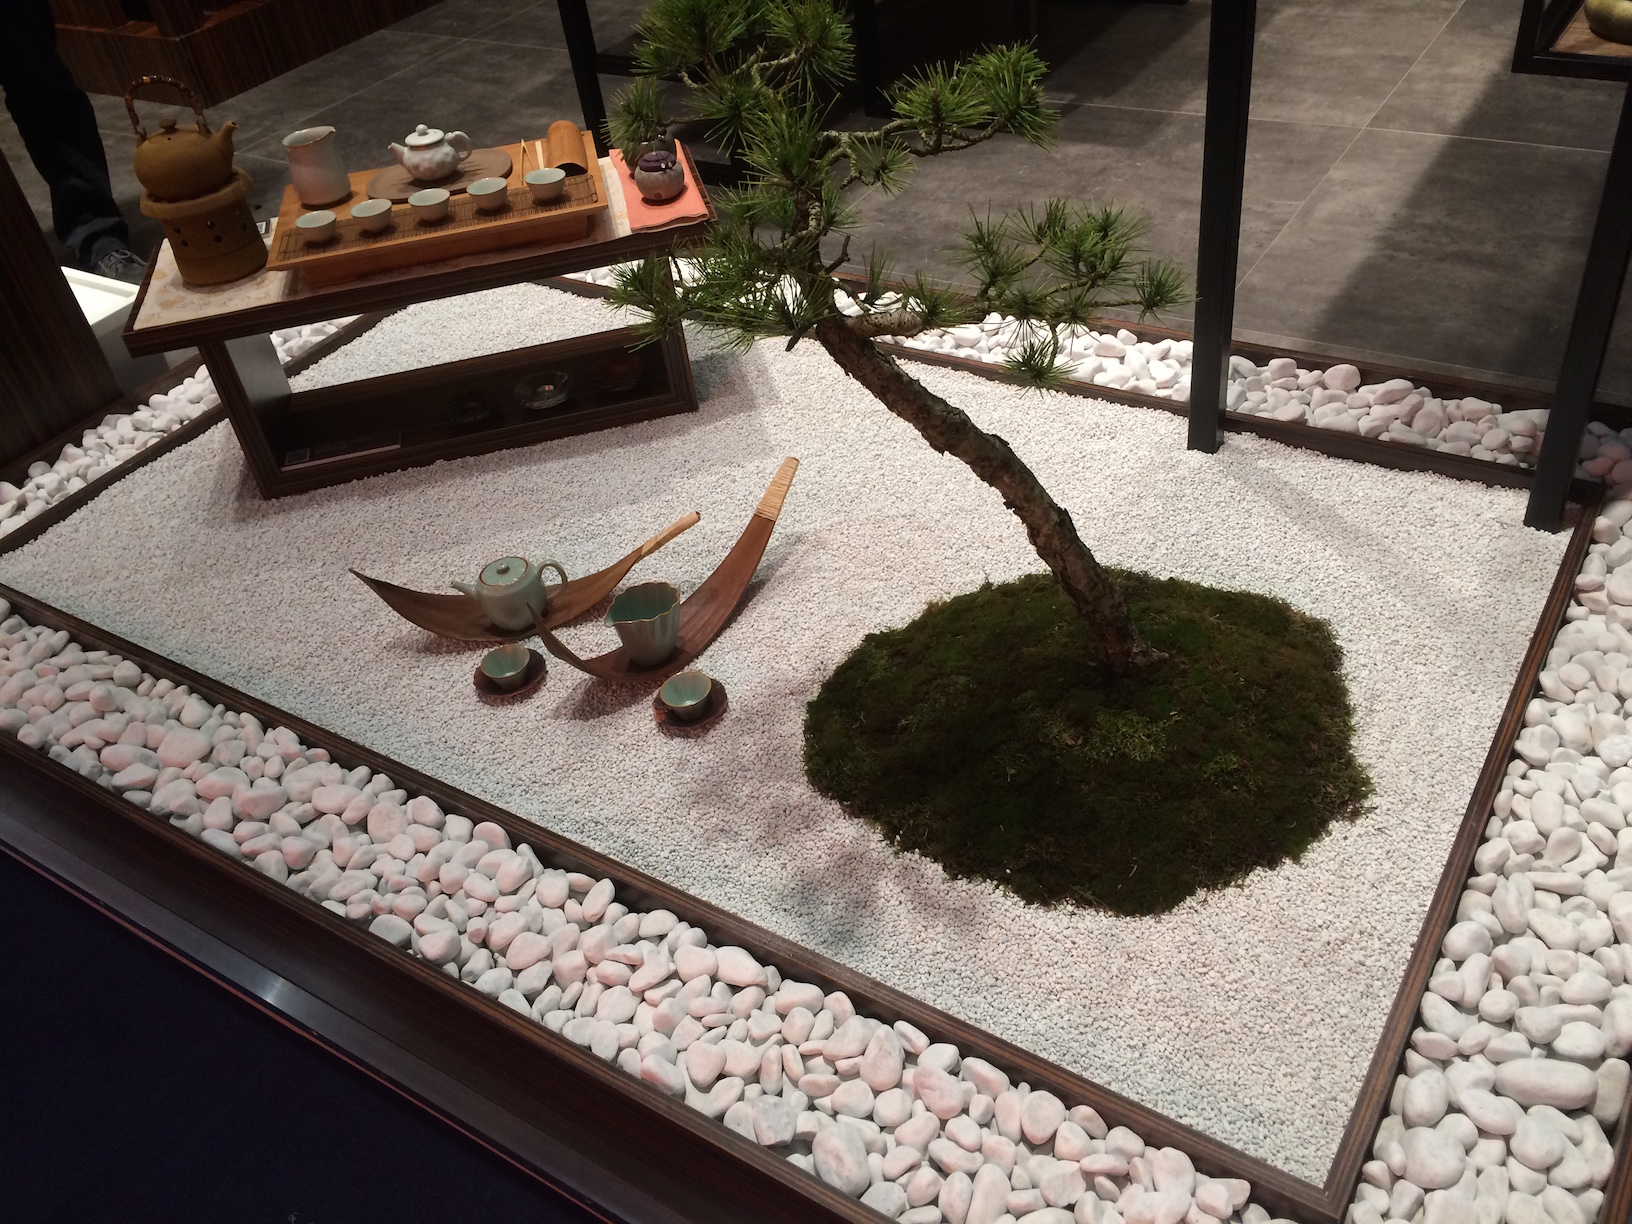 On y tait le salon des arts de la table de francfort for Deco jardin zen interieur